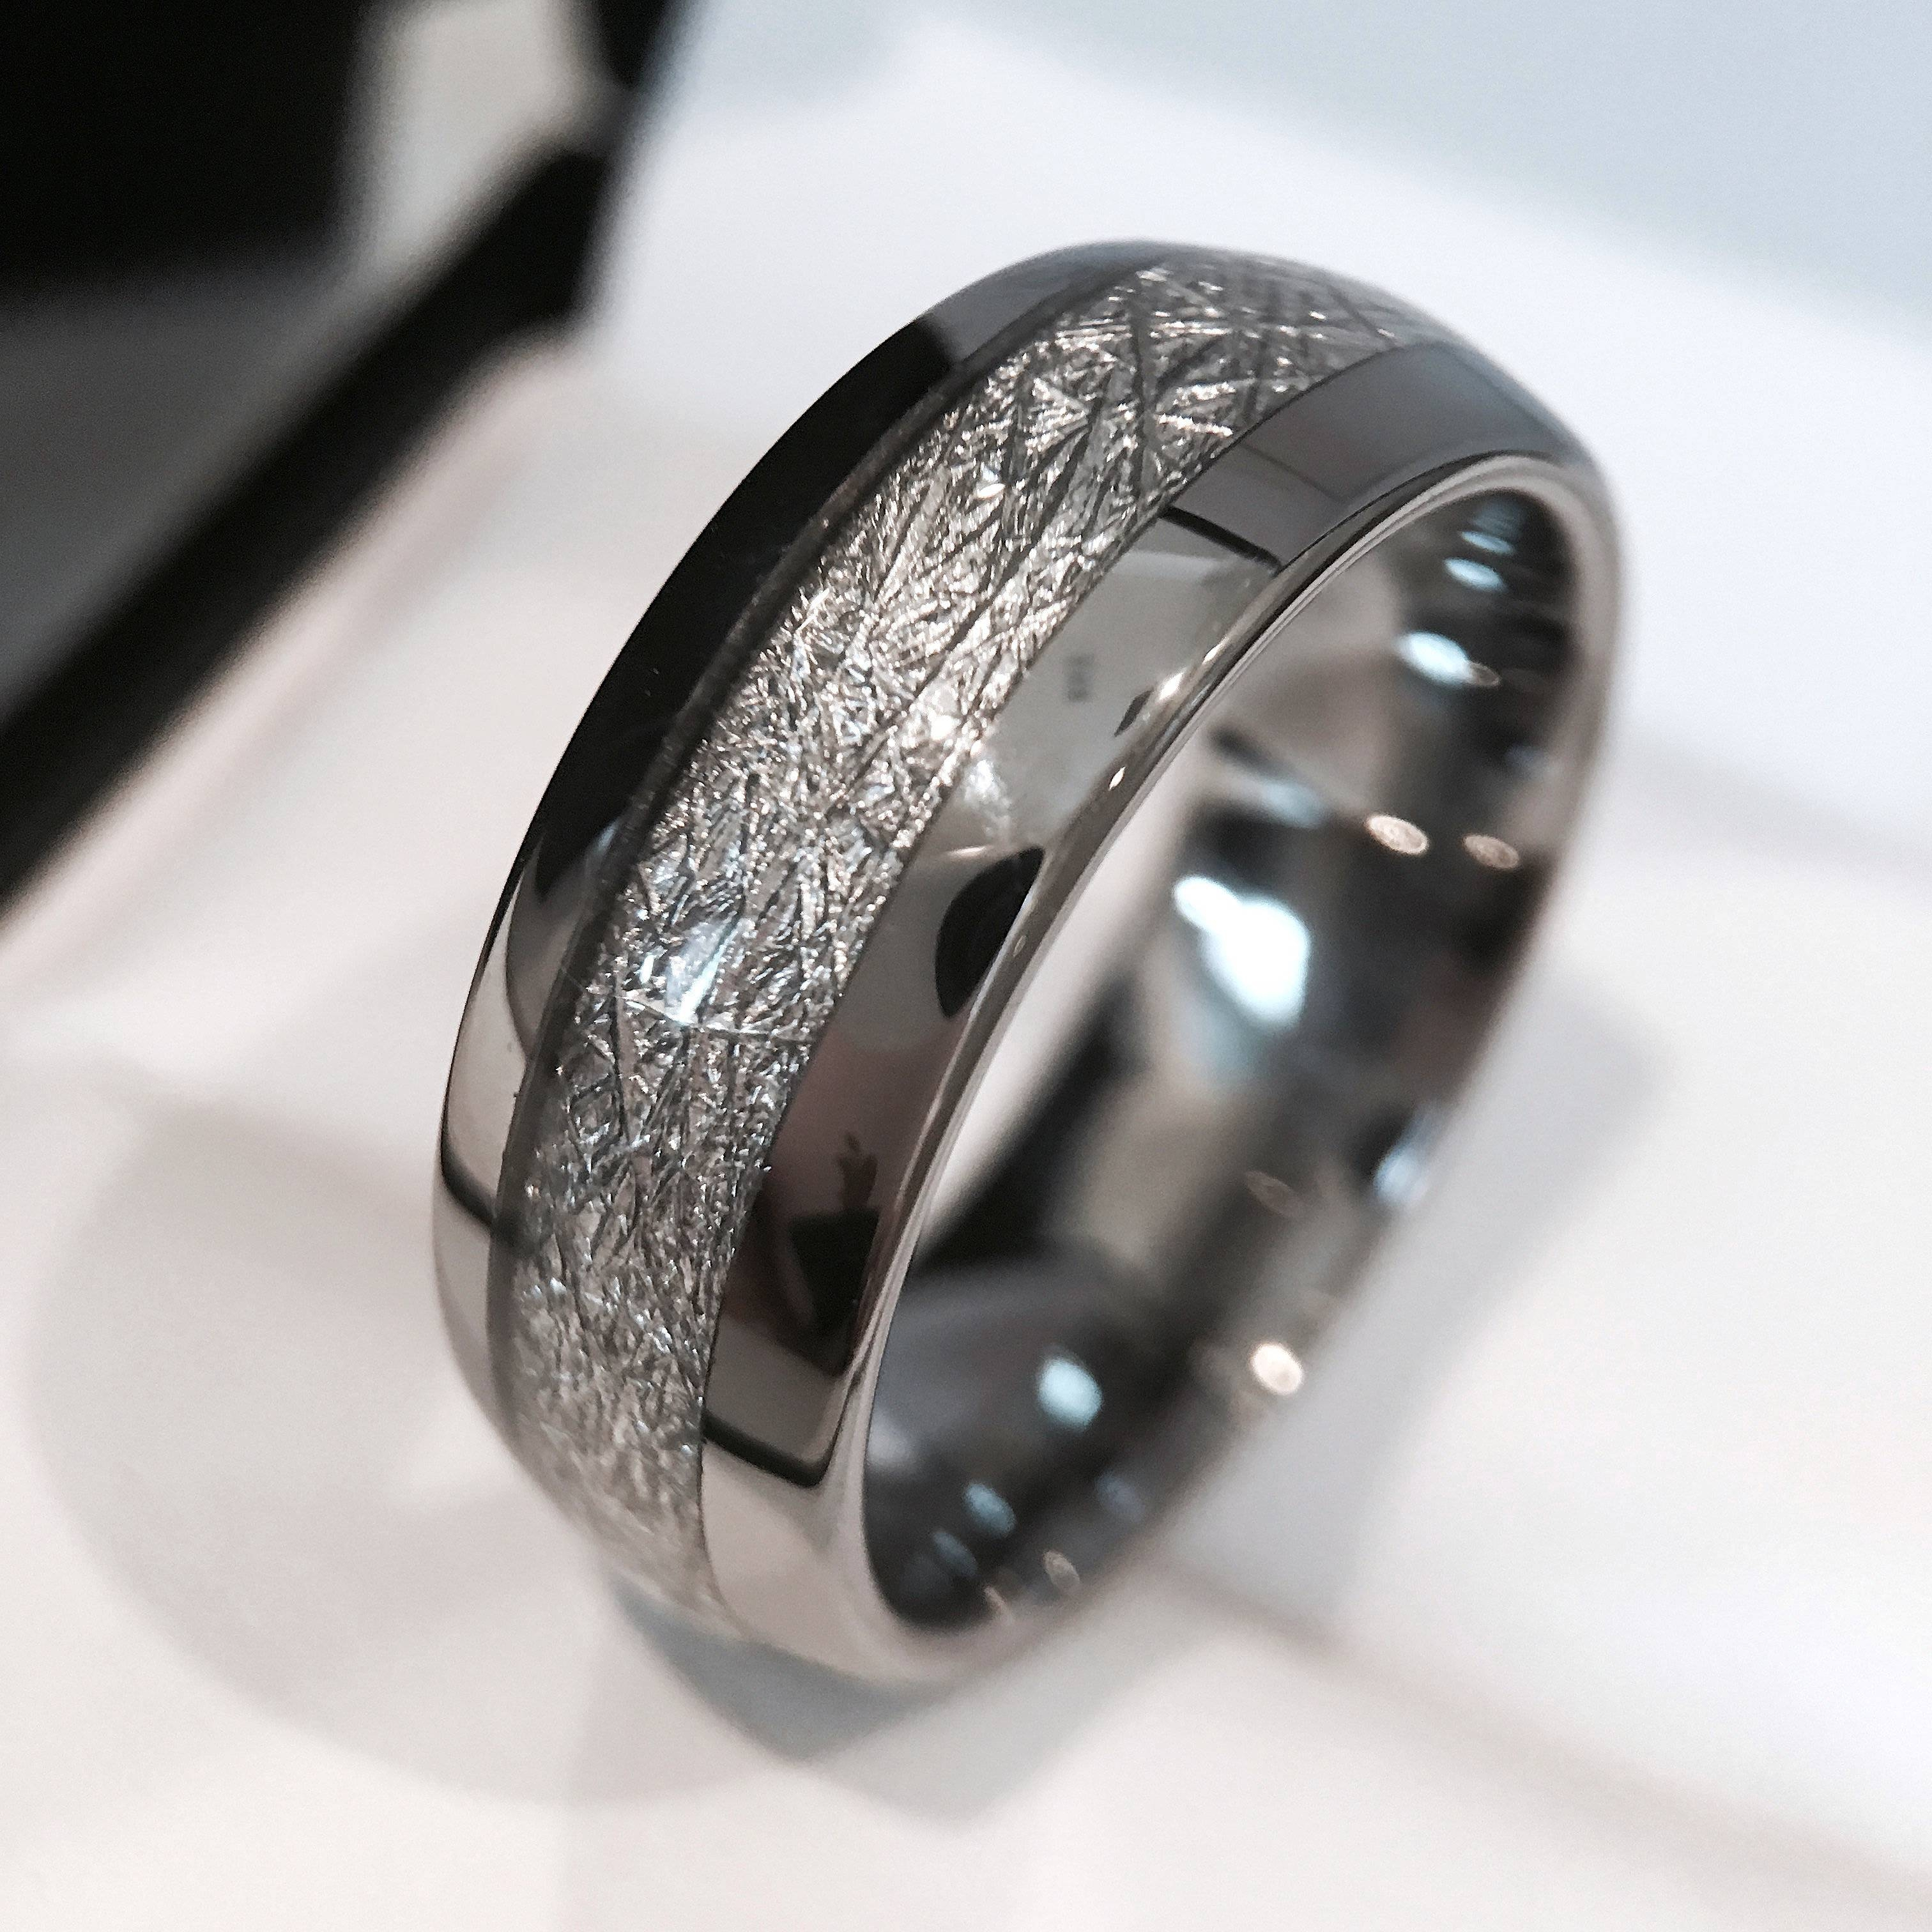 Tungsten Band, Engagement Ring, Wedding Band, Wedding Ring, Rings For Tungsten Wedding Bands (Gallery 269 of 339)